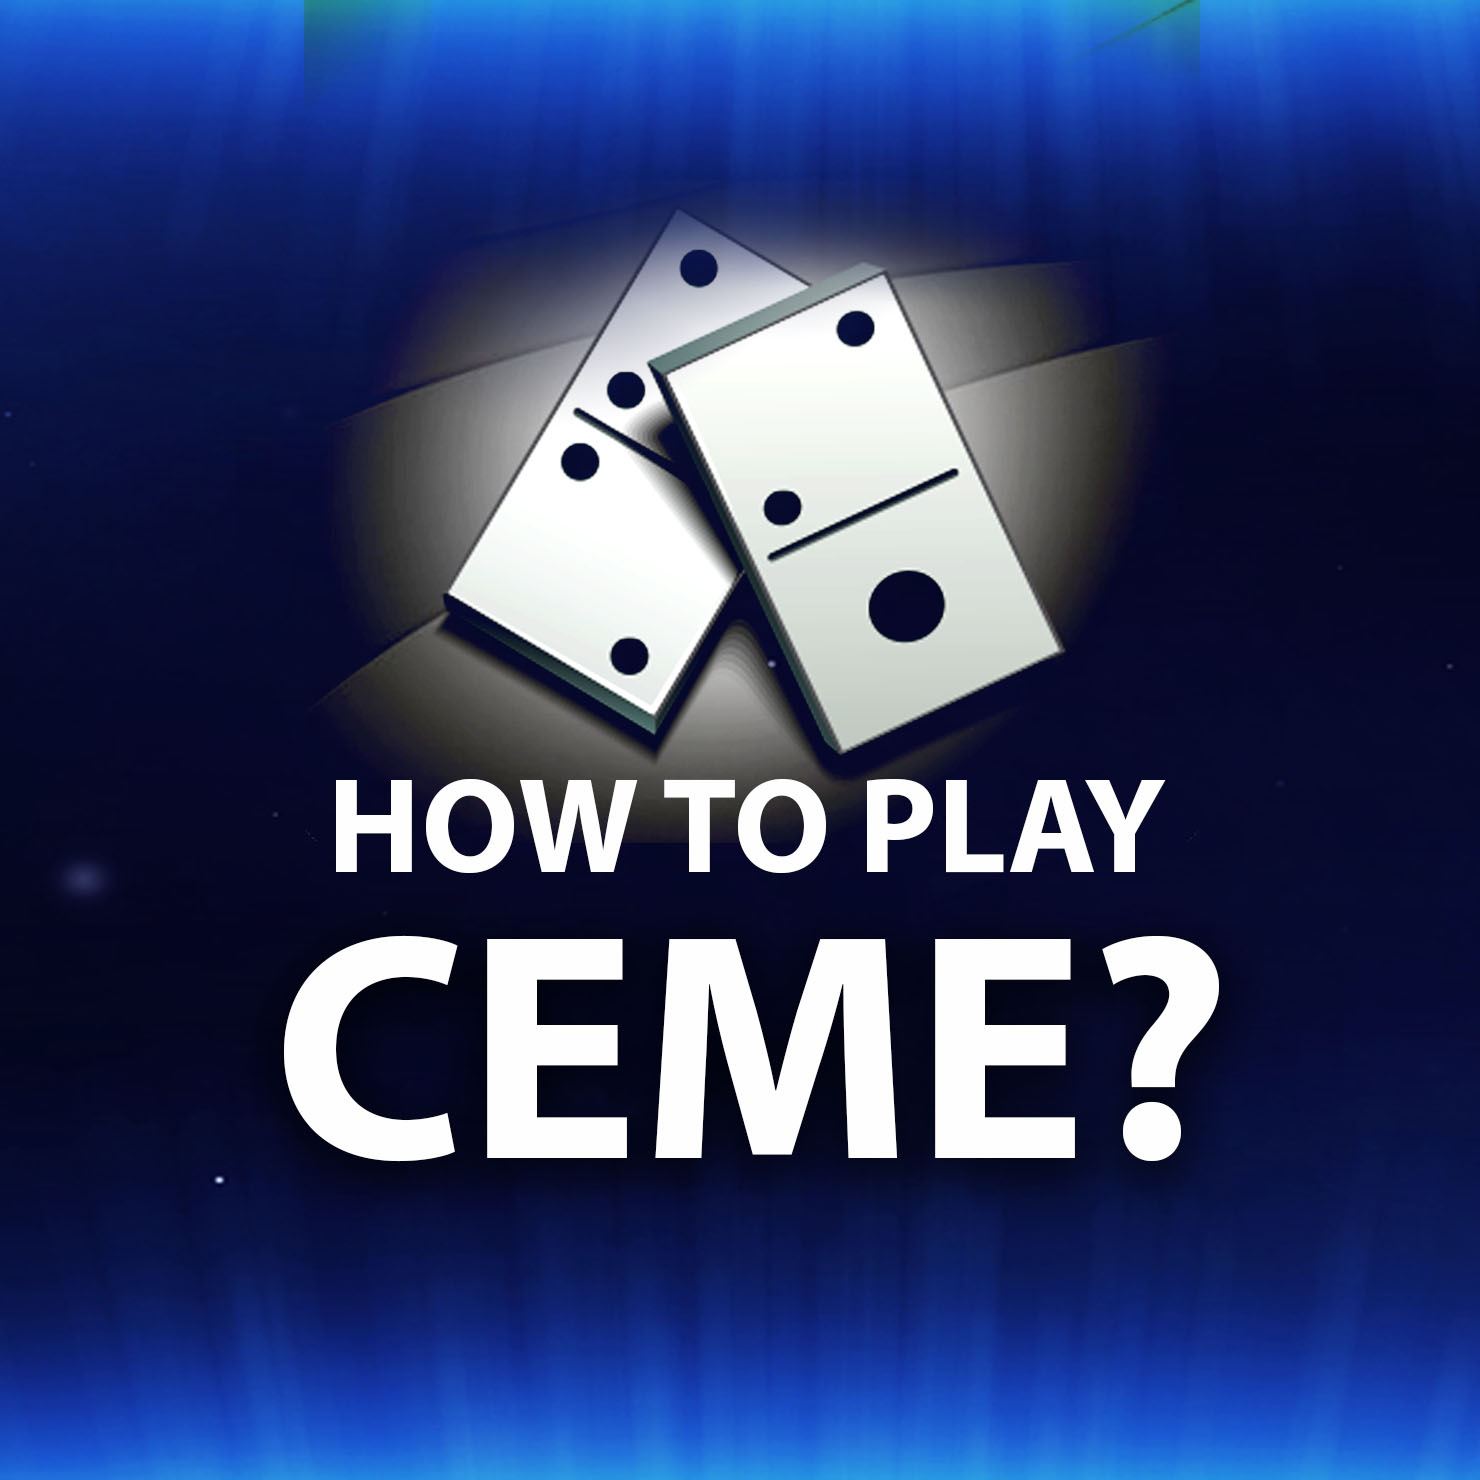 How To Play Ceme